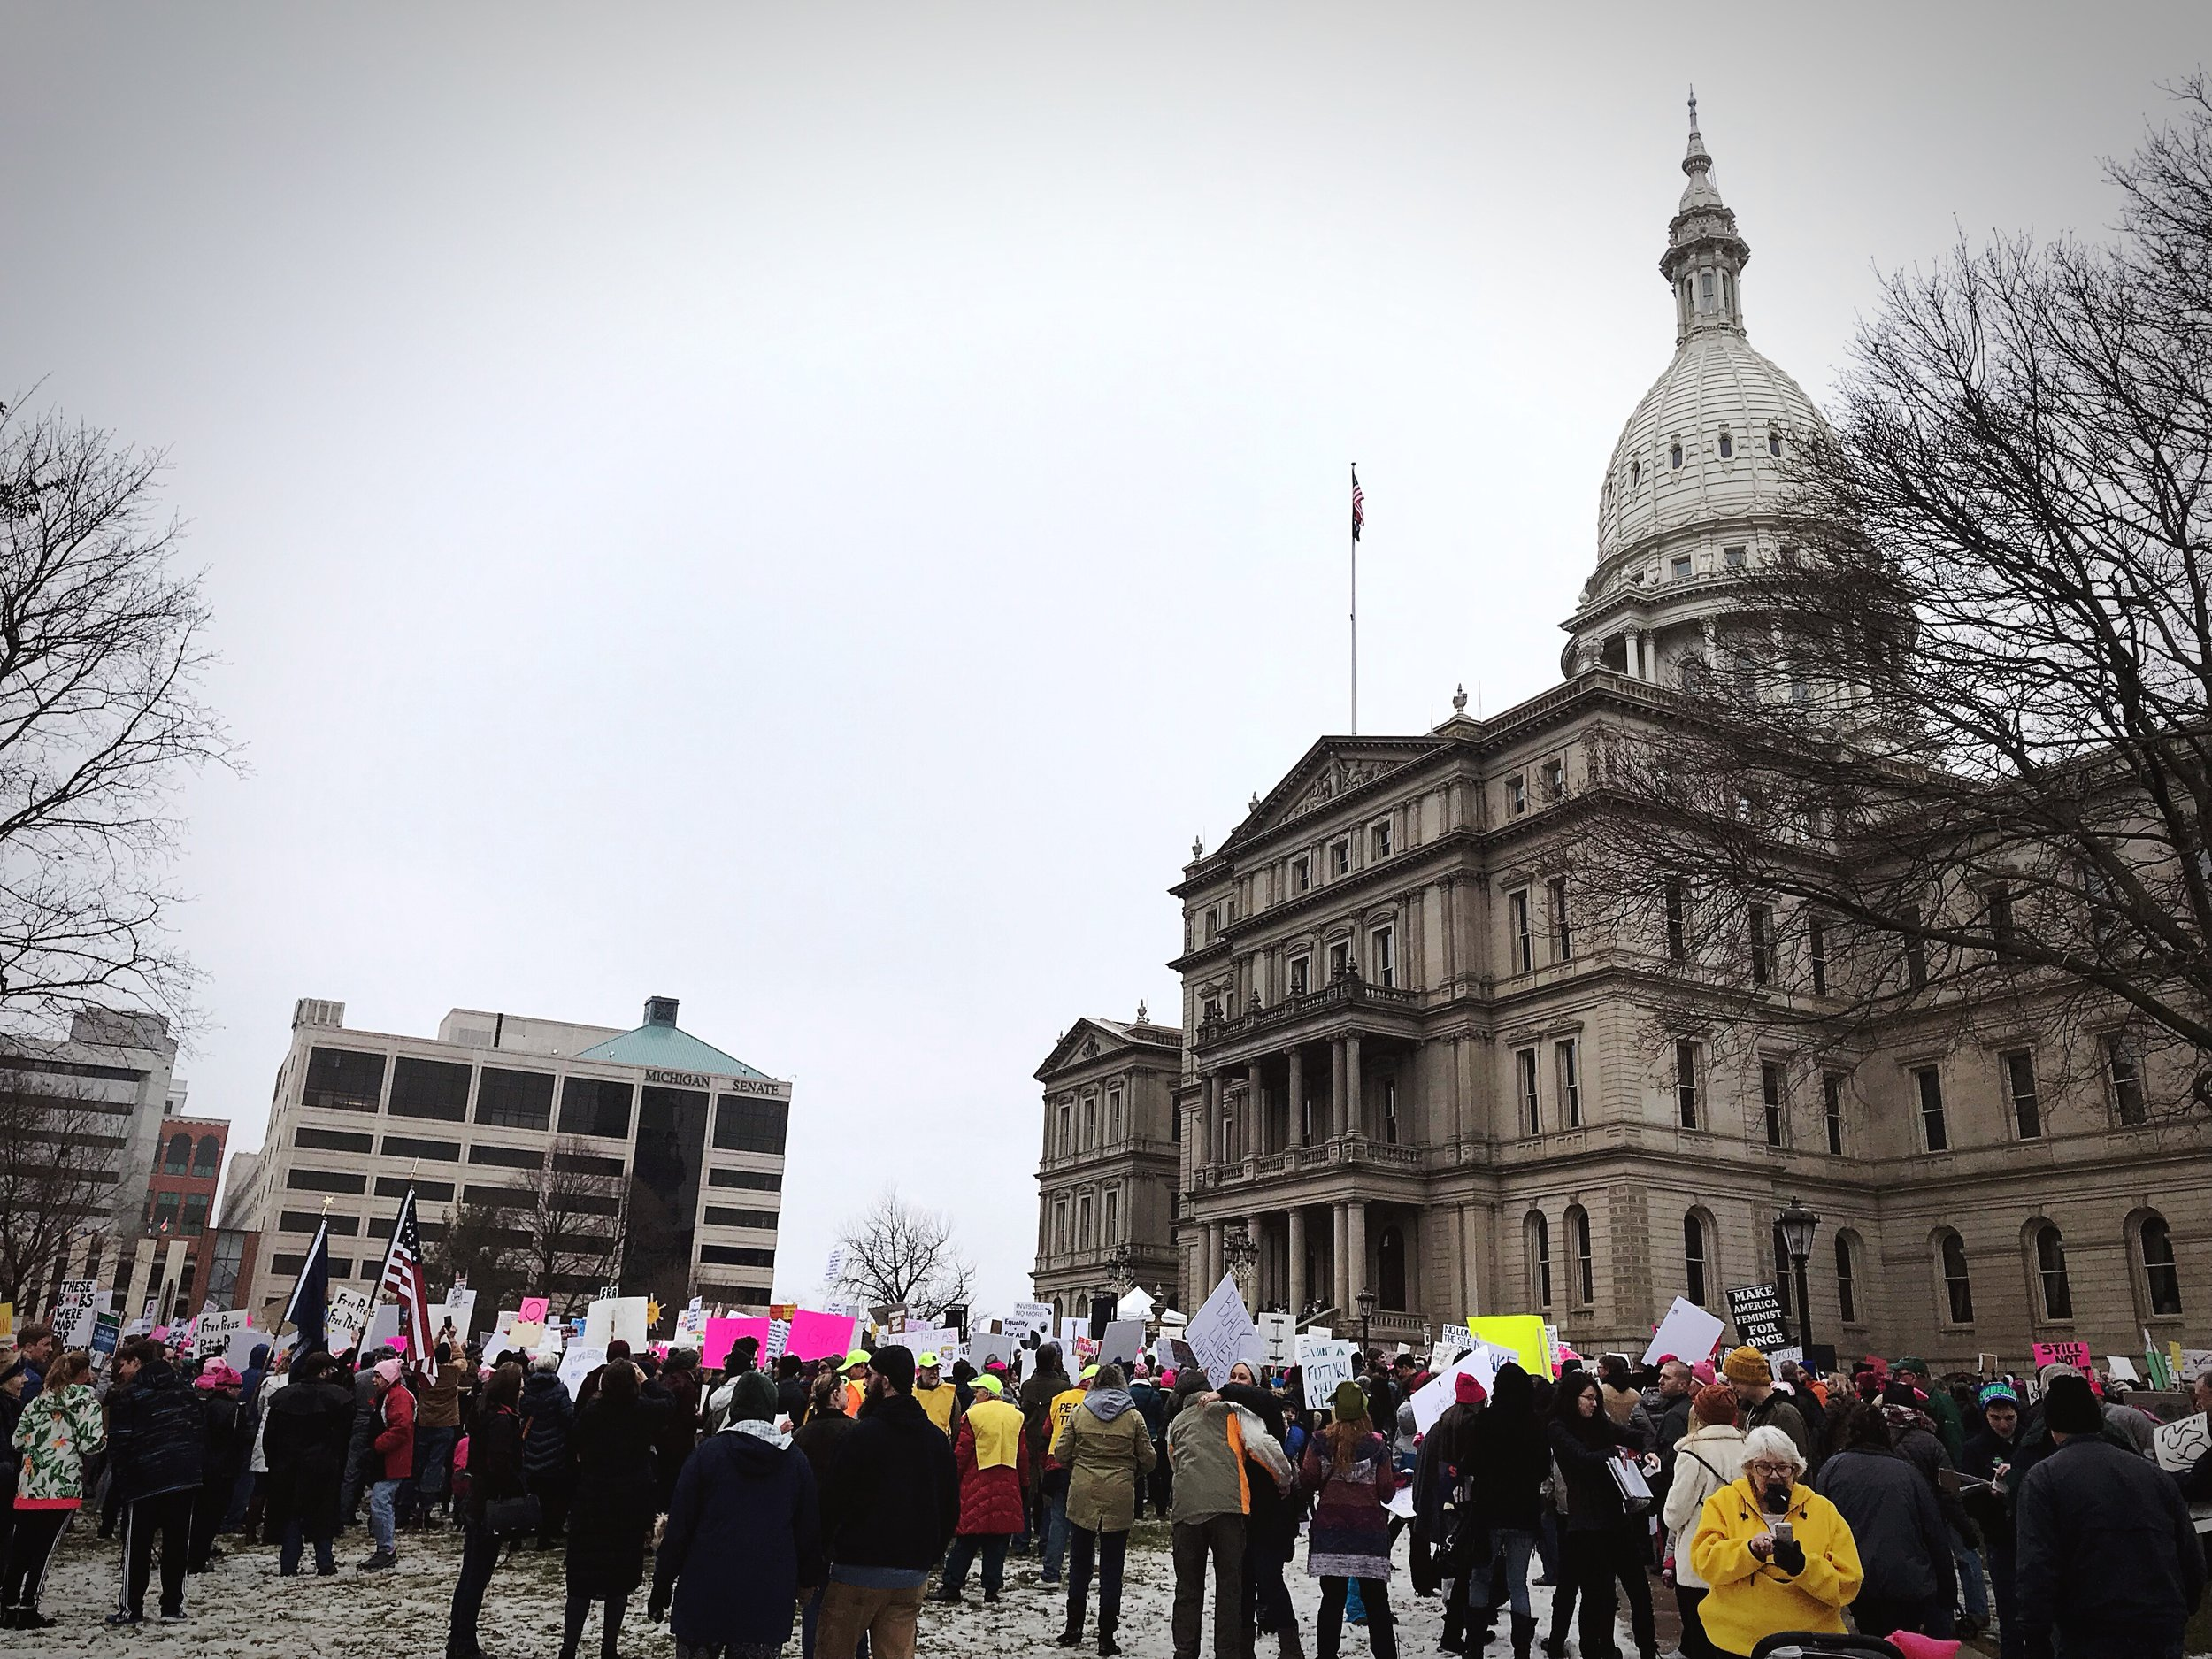 Susan J. Demas/Women's March, January 21, 2018